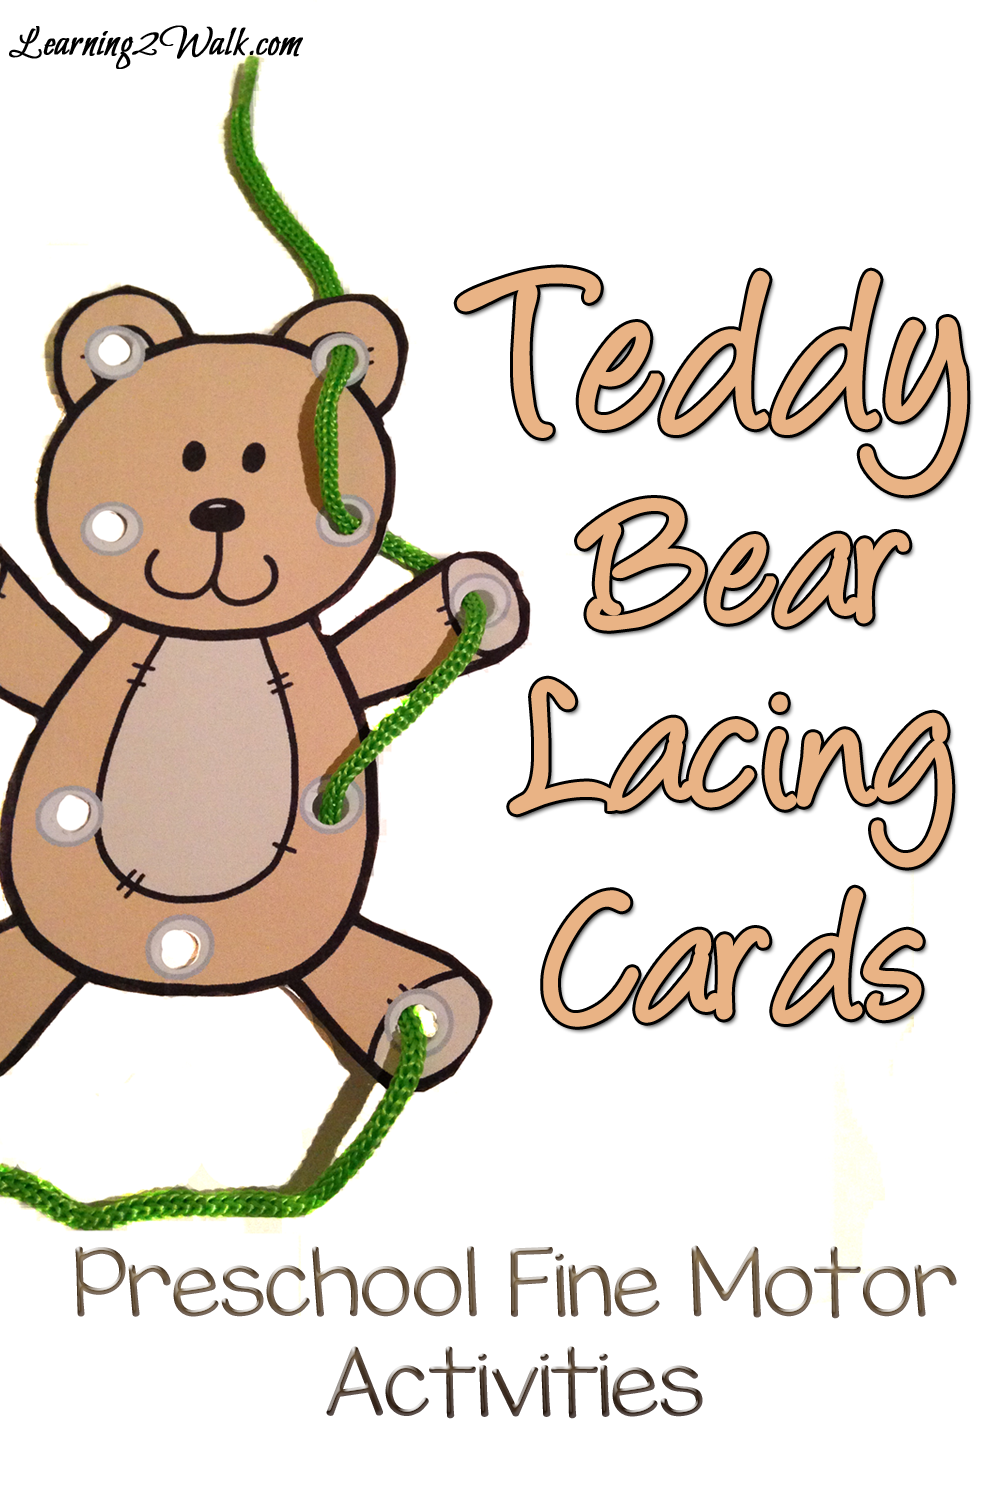 Teddy Bear Preschool Fine Motor Activities | Vorschule, Kindergarten ...